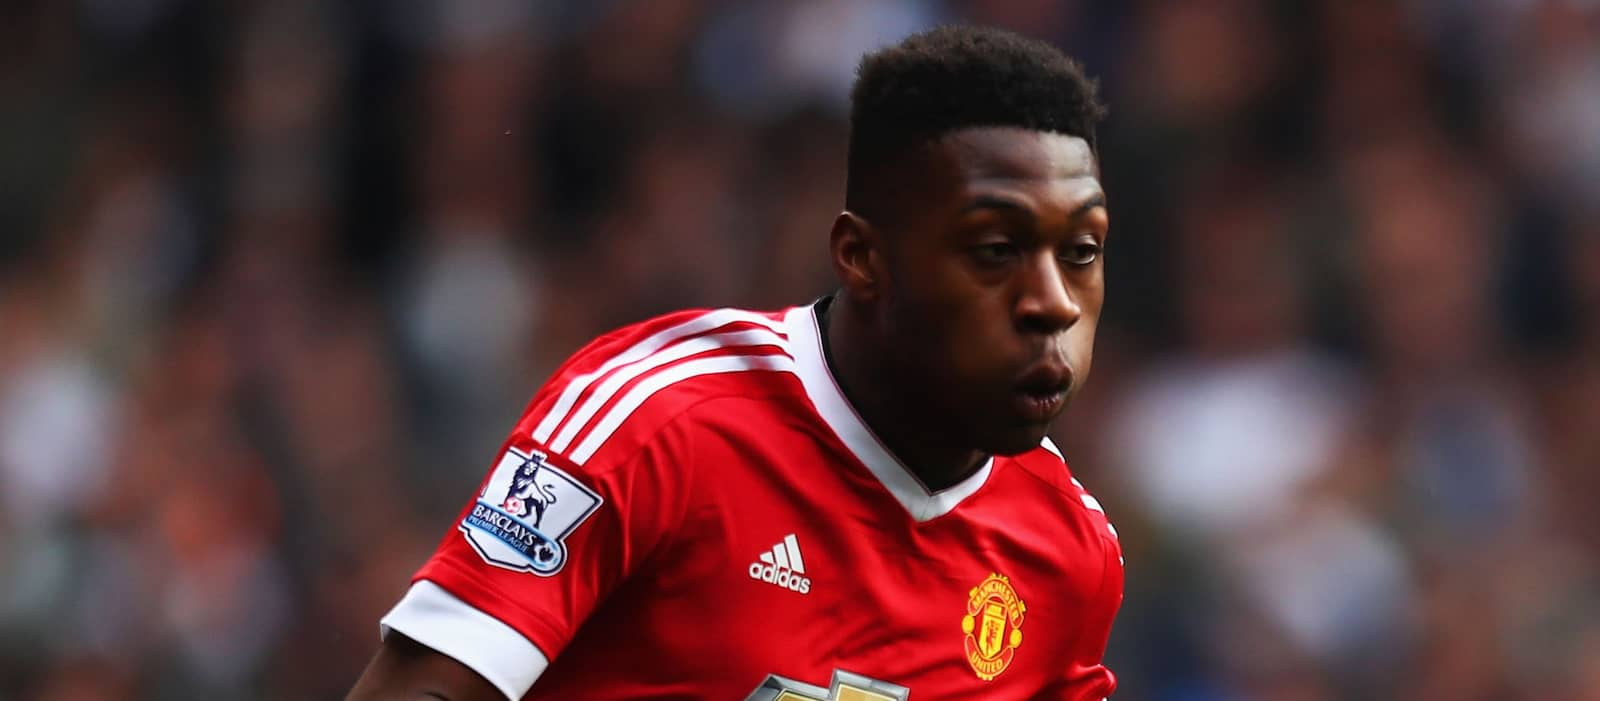 Guardian: Timothy Fosu-Mensah likely to leave Manchester United on loan – report